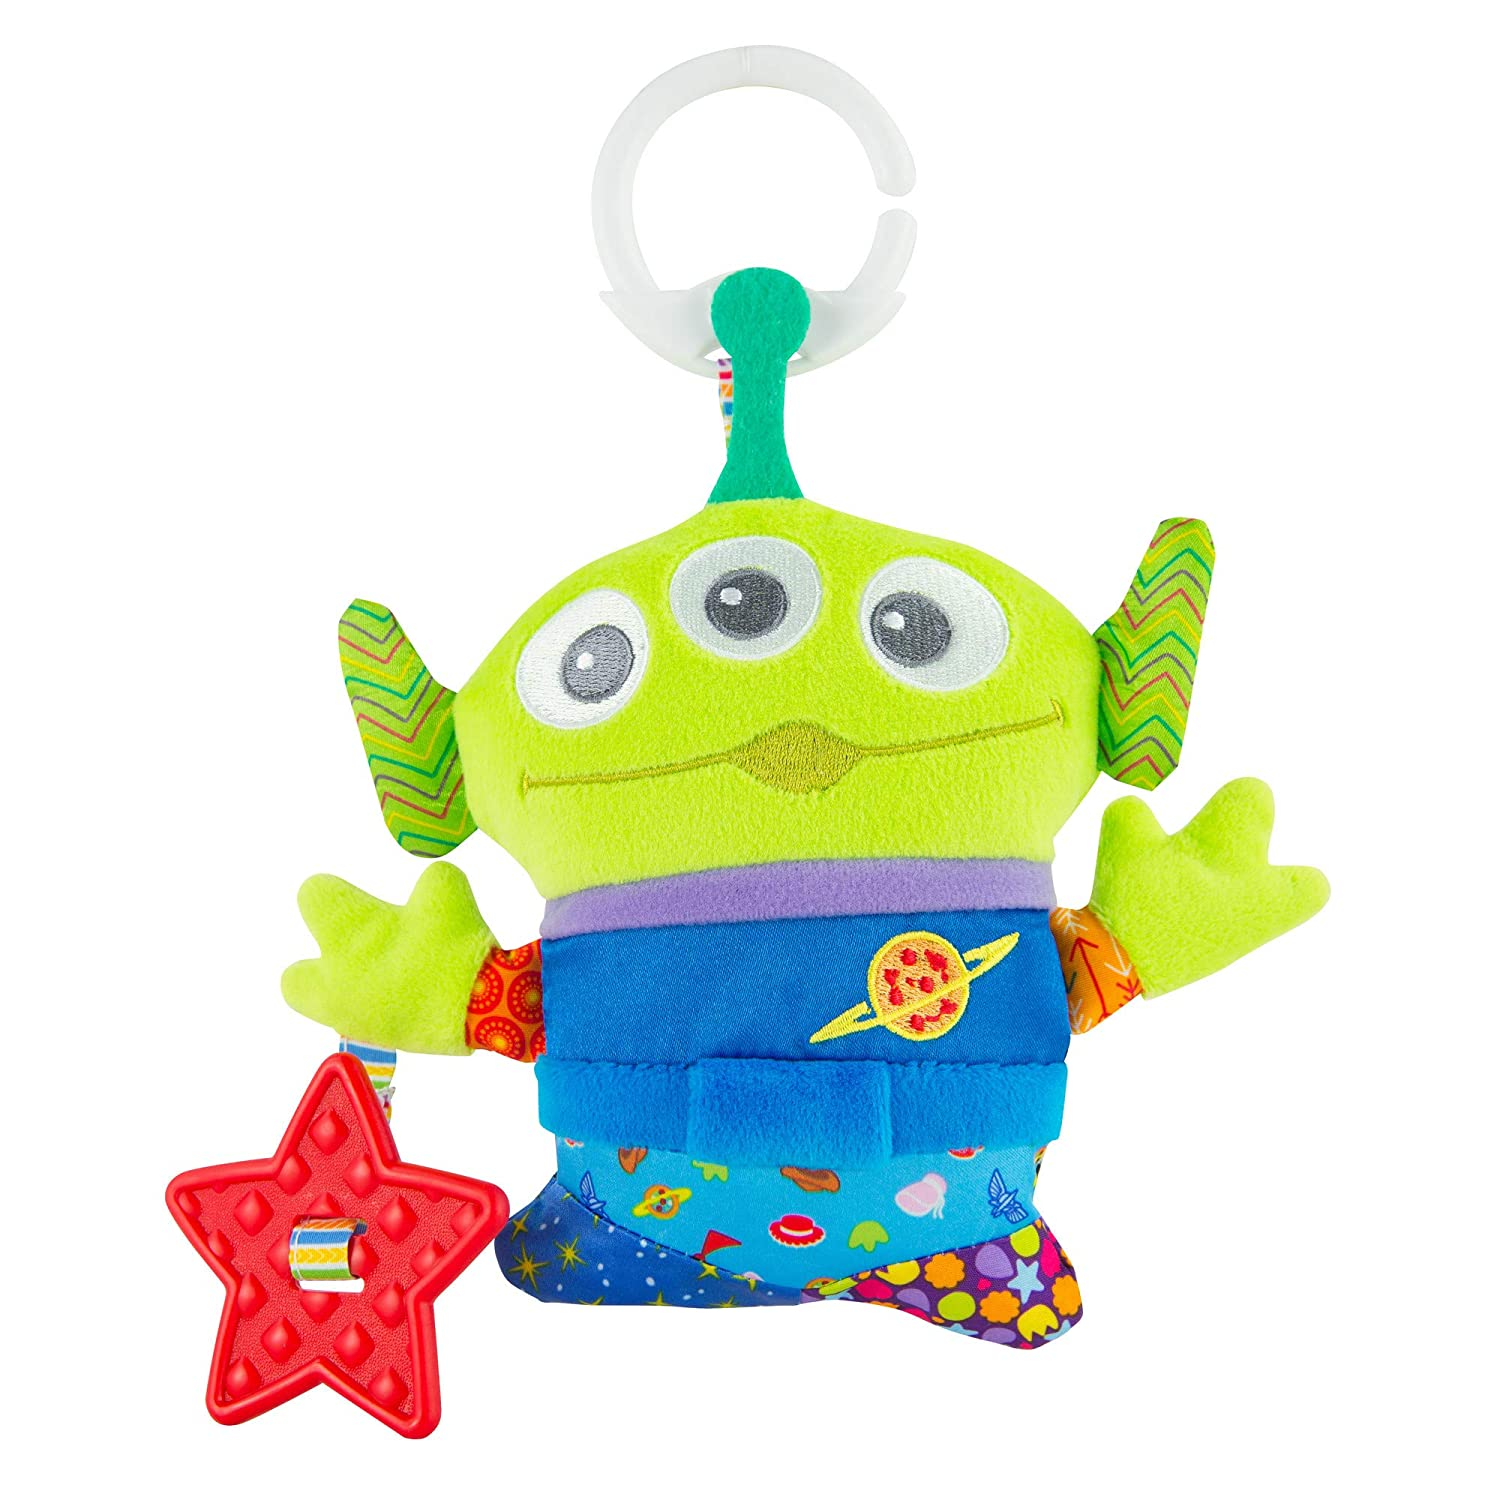 Disney Toy Story Alien Stretchie Sleeper and Hat for Baby Size 3-6 MO Multi